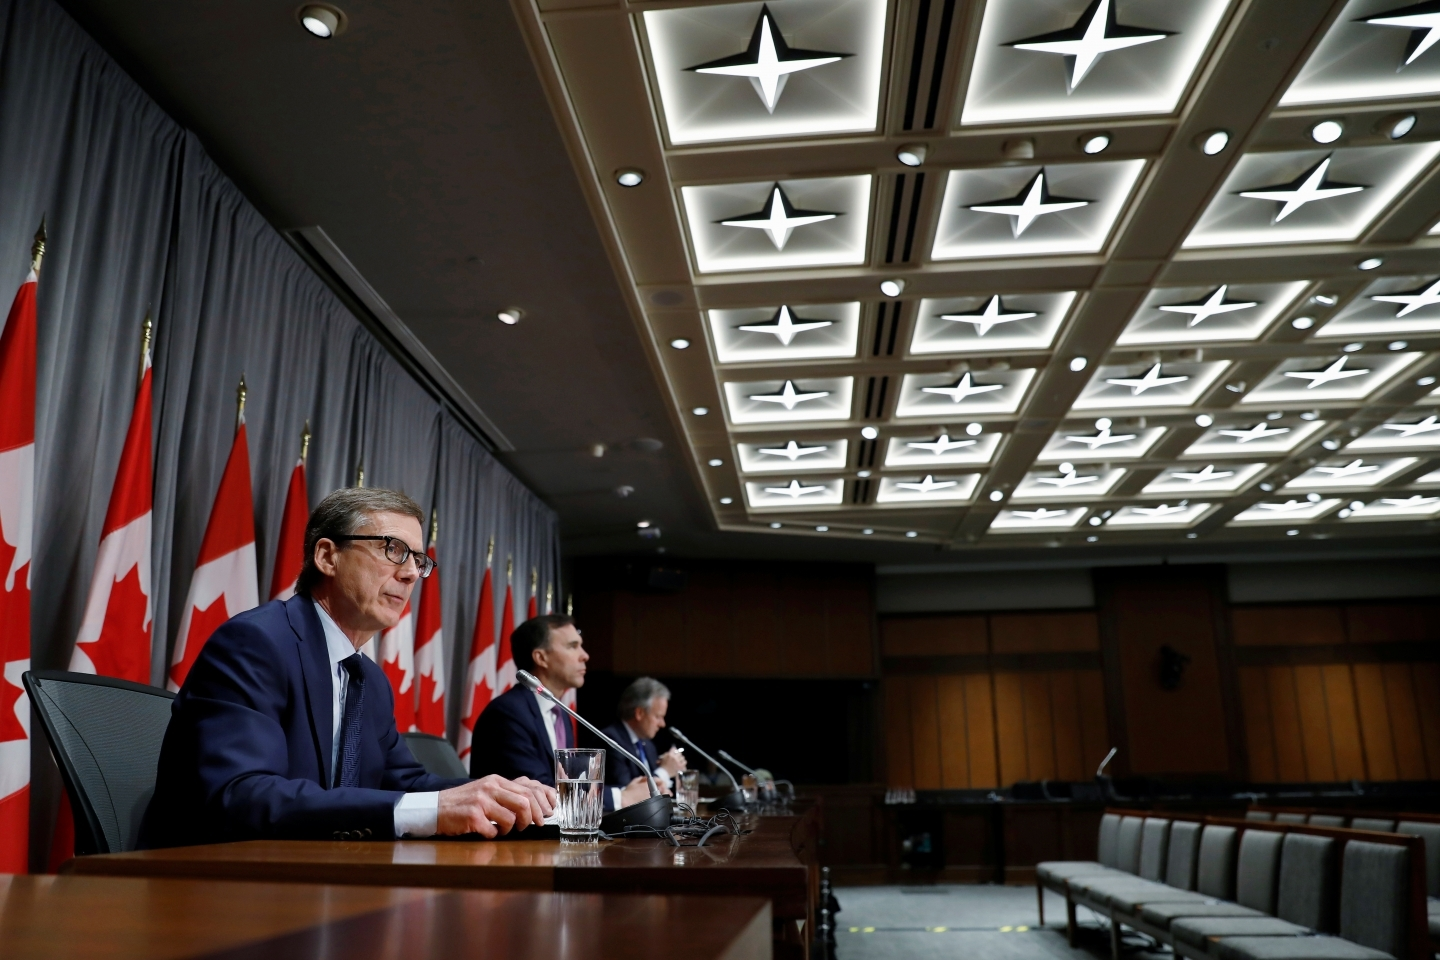 Bank of Canada governor designate Tiff Macklem attends a news conference with Canada's Minister of Finance Bill Morneau and current Bank of Canada governor Stephen Poloz in Ottawa, Canada on May 1, 2020.  (Reuters/Blair Gable)